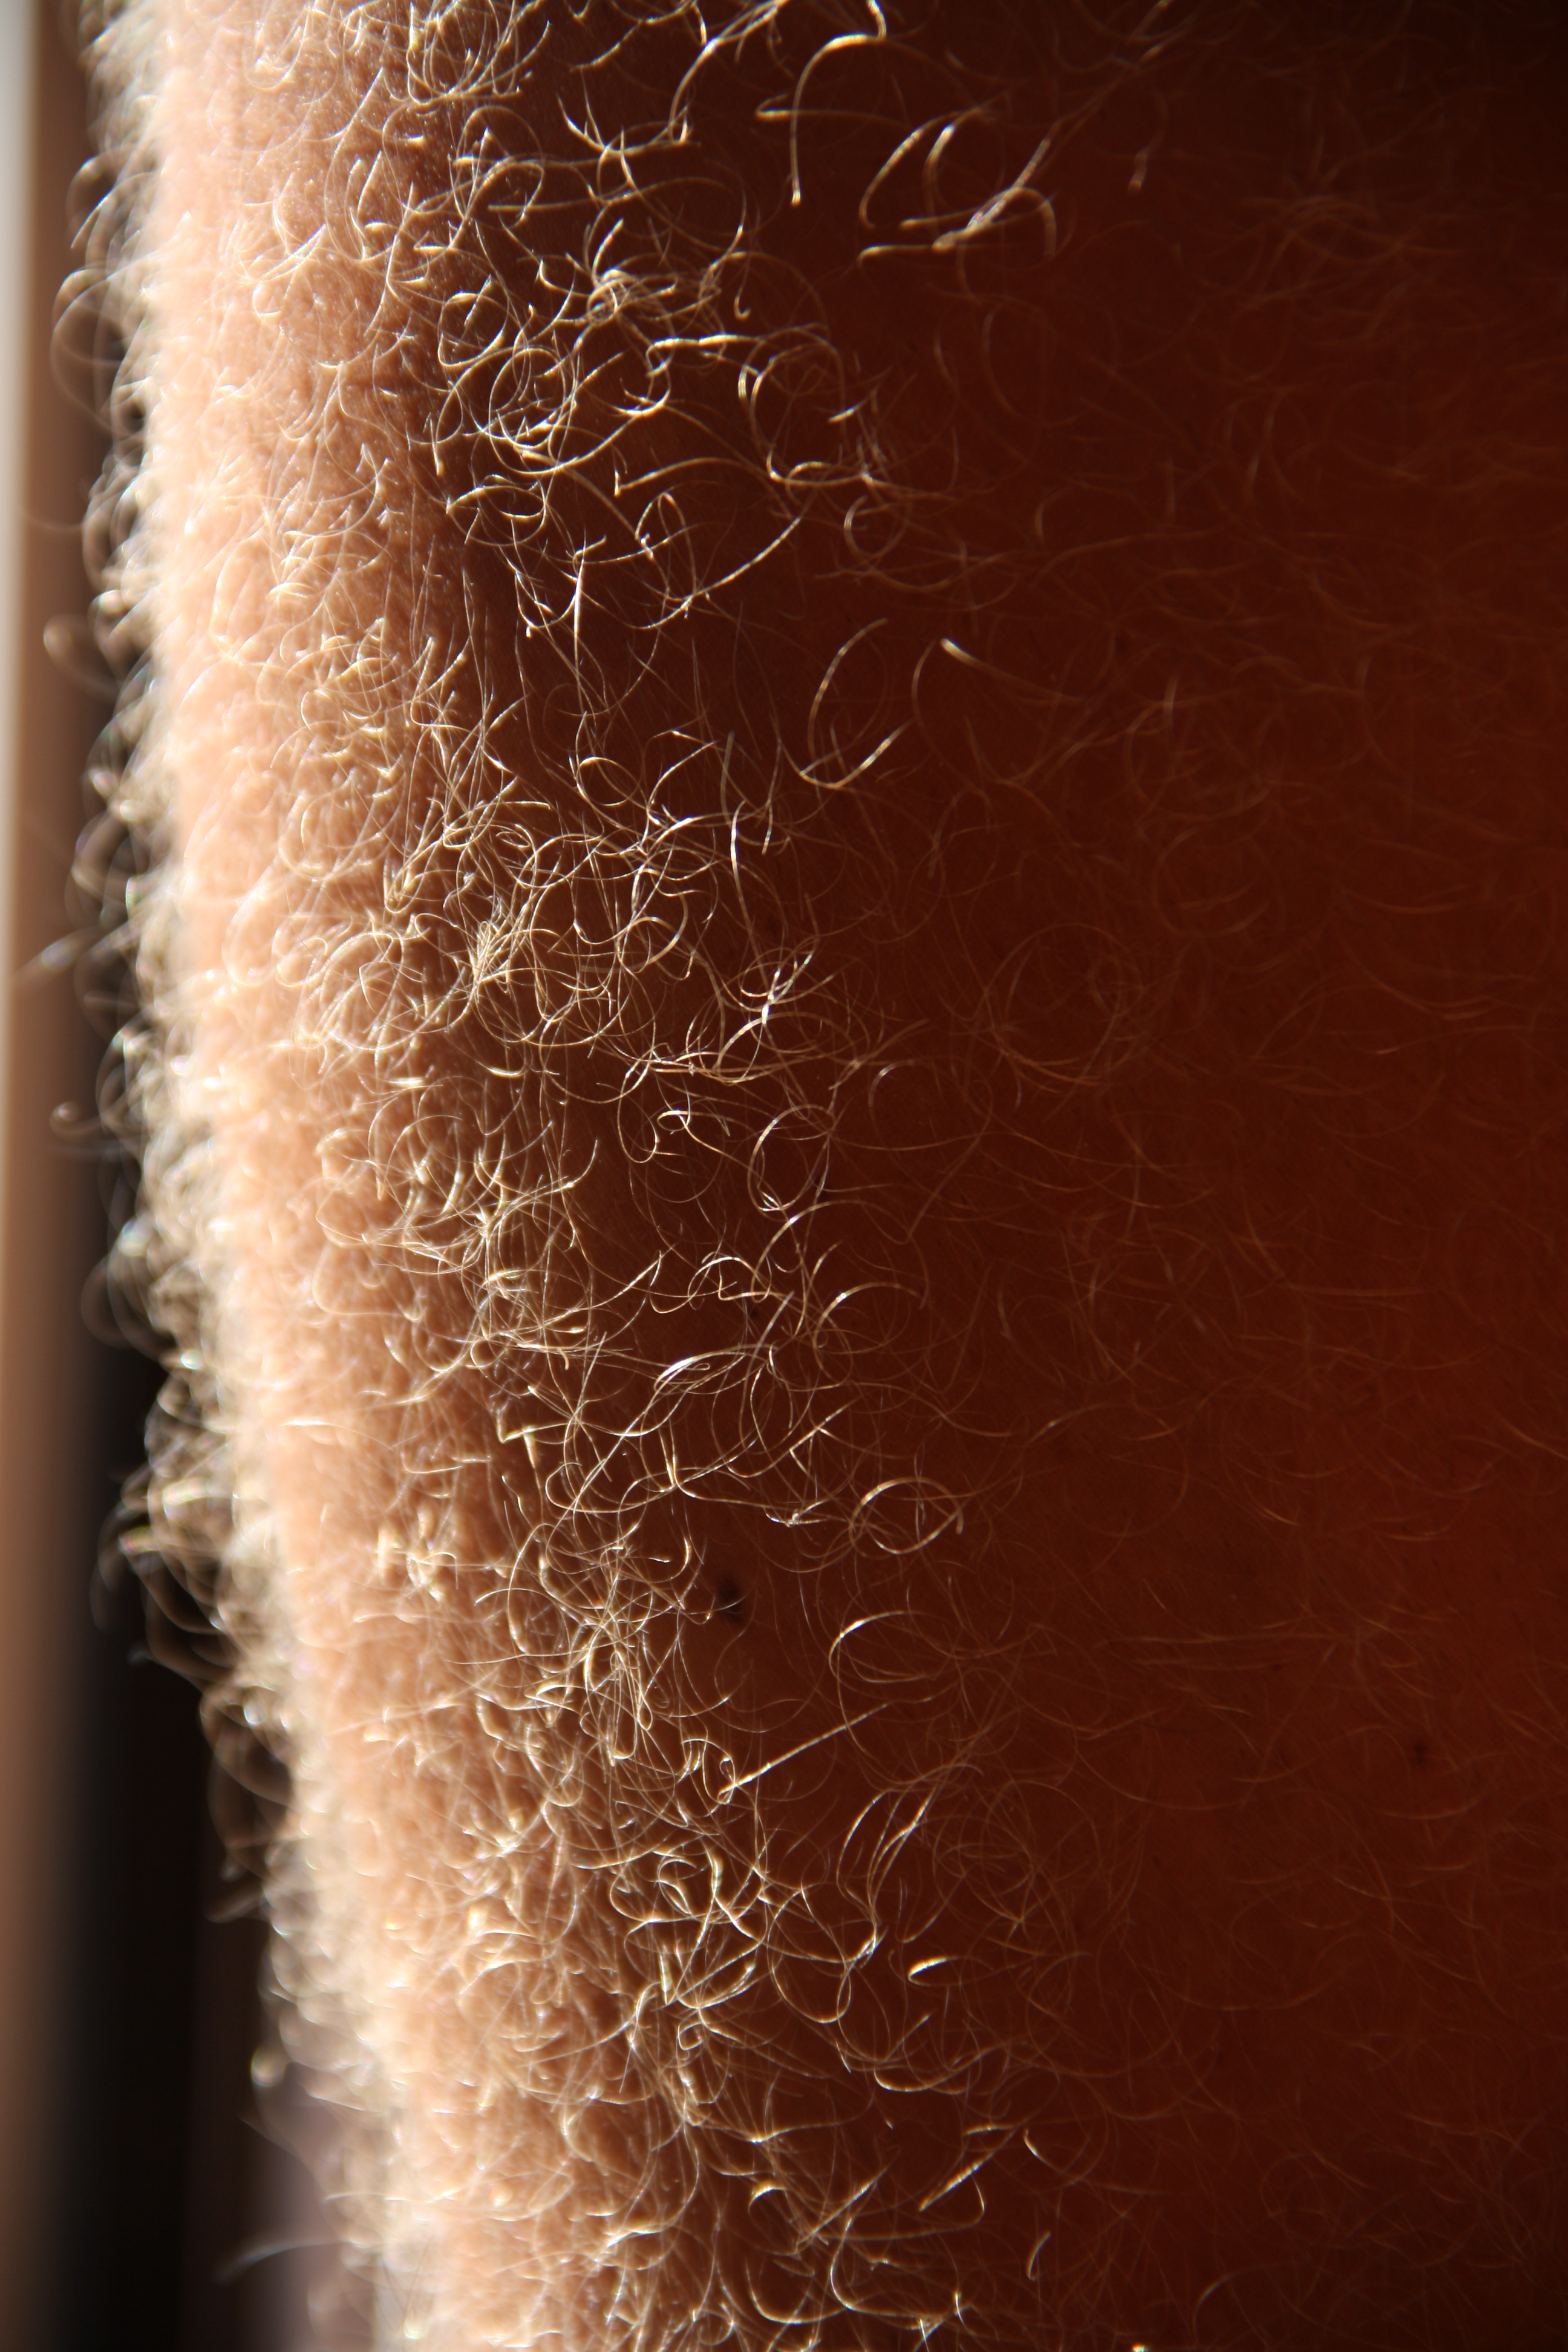 Hairy legs black girl thumbs something and